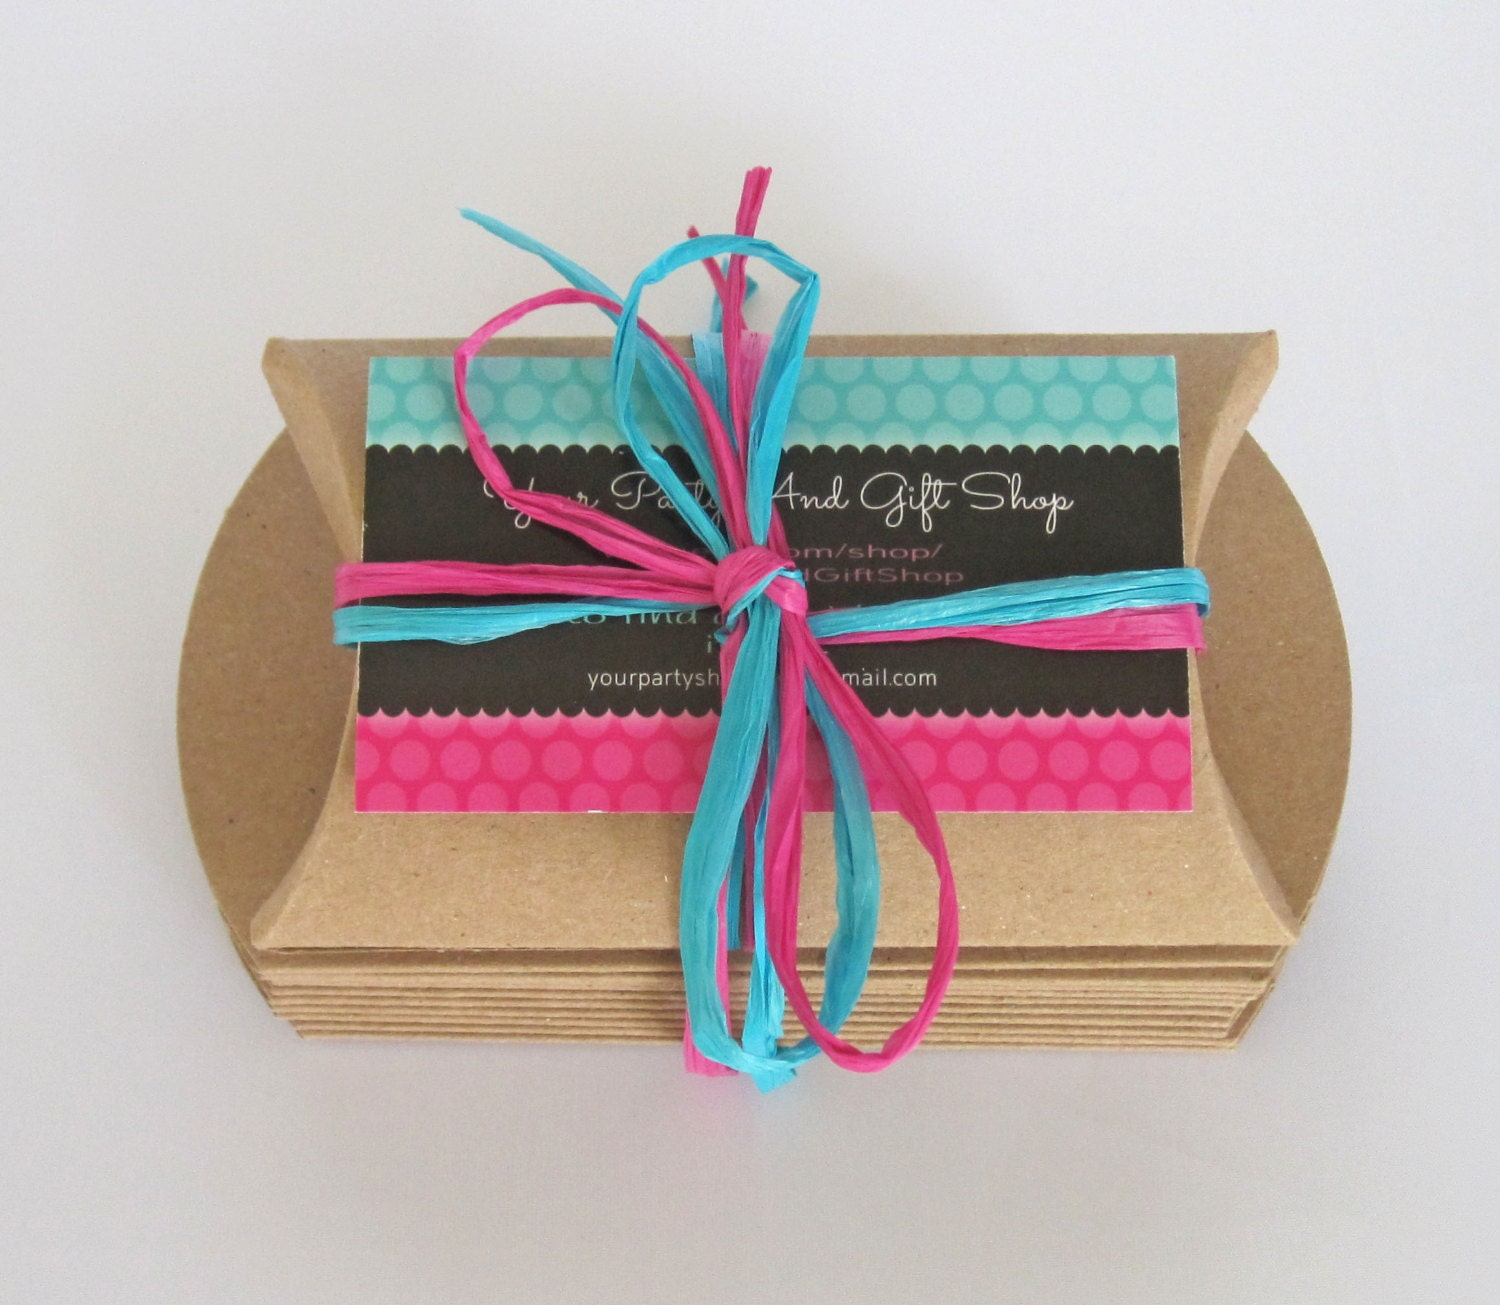 80x55x20mm Diy Black Kraft Paper Pillow Jewelry Display: Pillow Boxes, 25 Gift Boxes, Small Boxes, Kraft Boxes